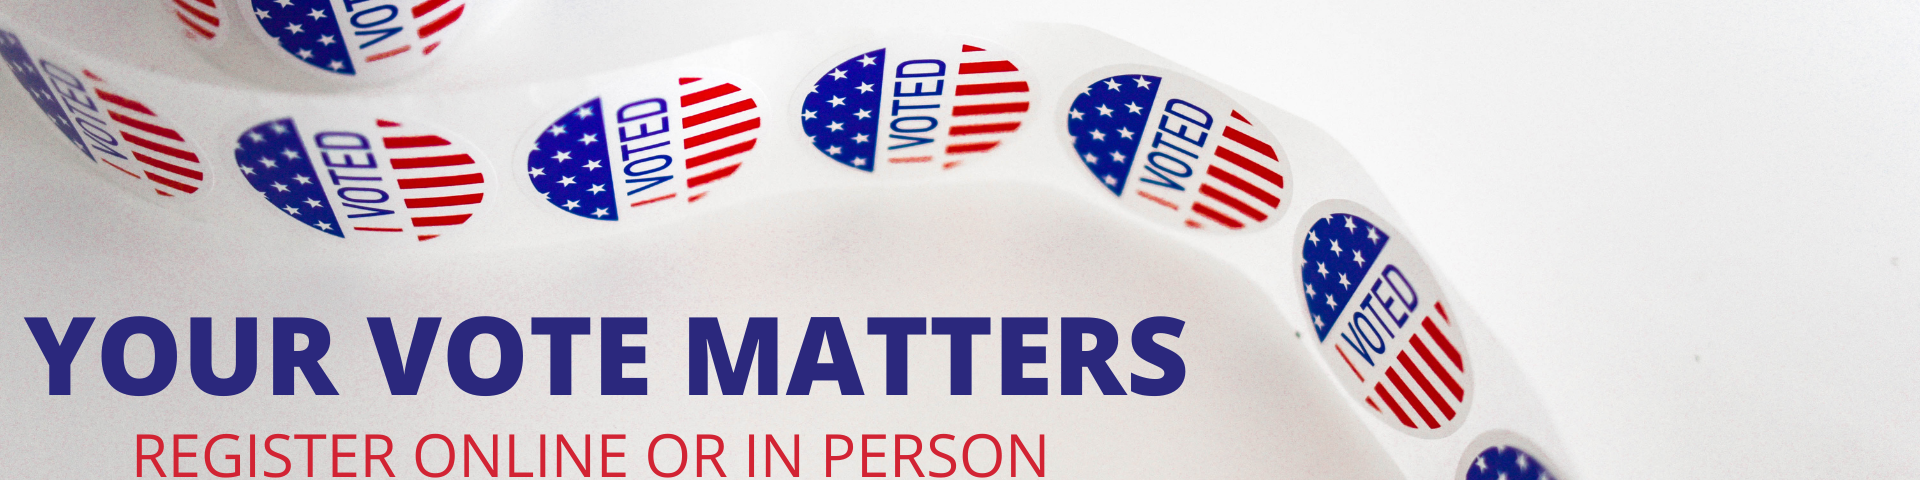 Your Vote Matters - Register to vote online or in person with I voted stickers on a roll in the background.